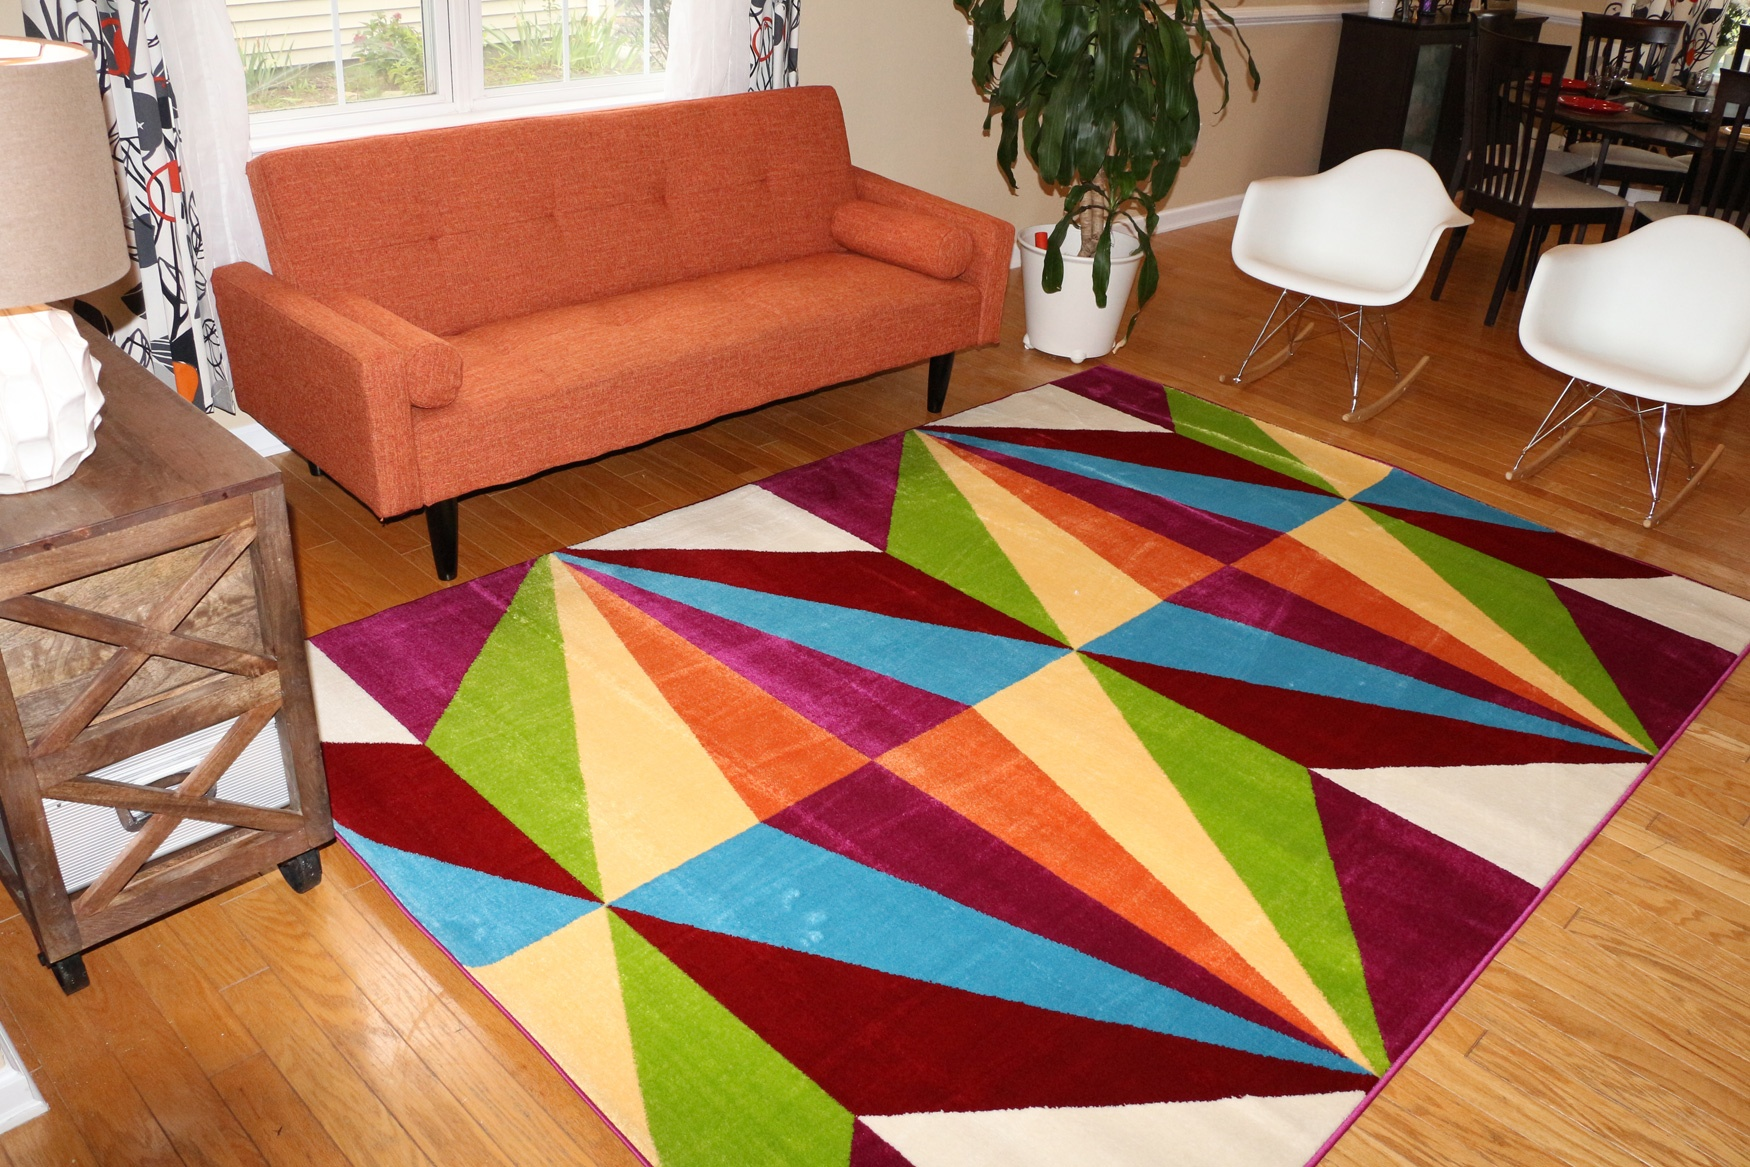 captivating-discount-area-rug-rugs-direct-with-colorful-design-and-sofa_02